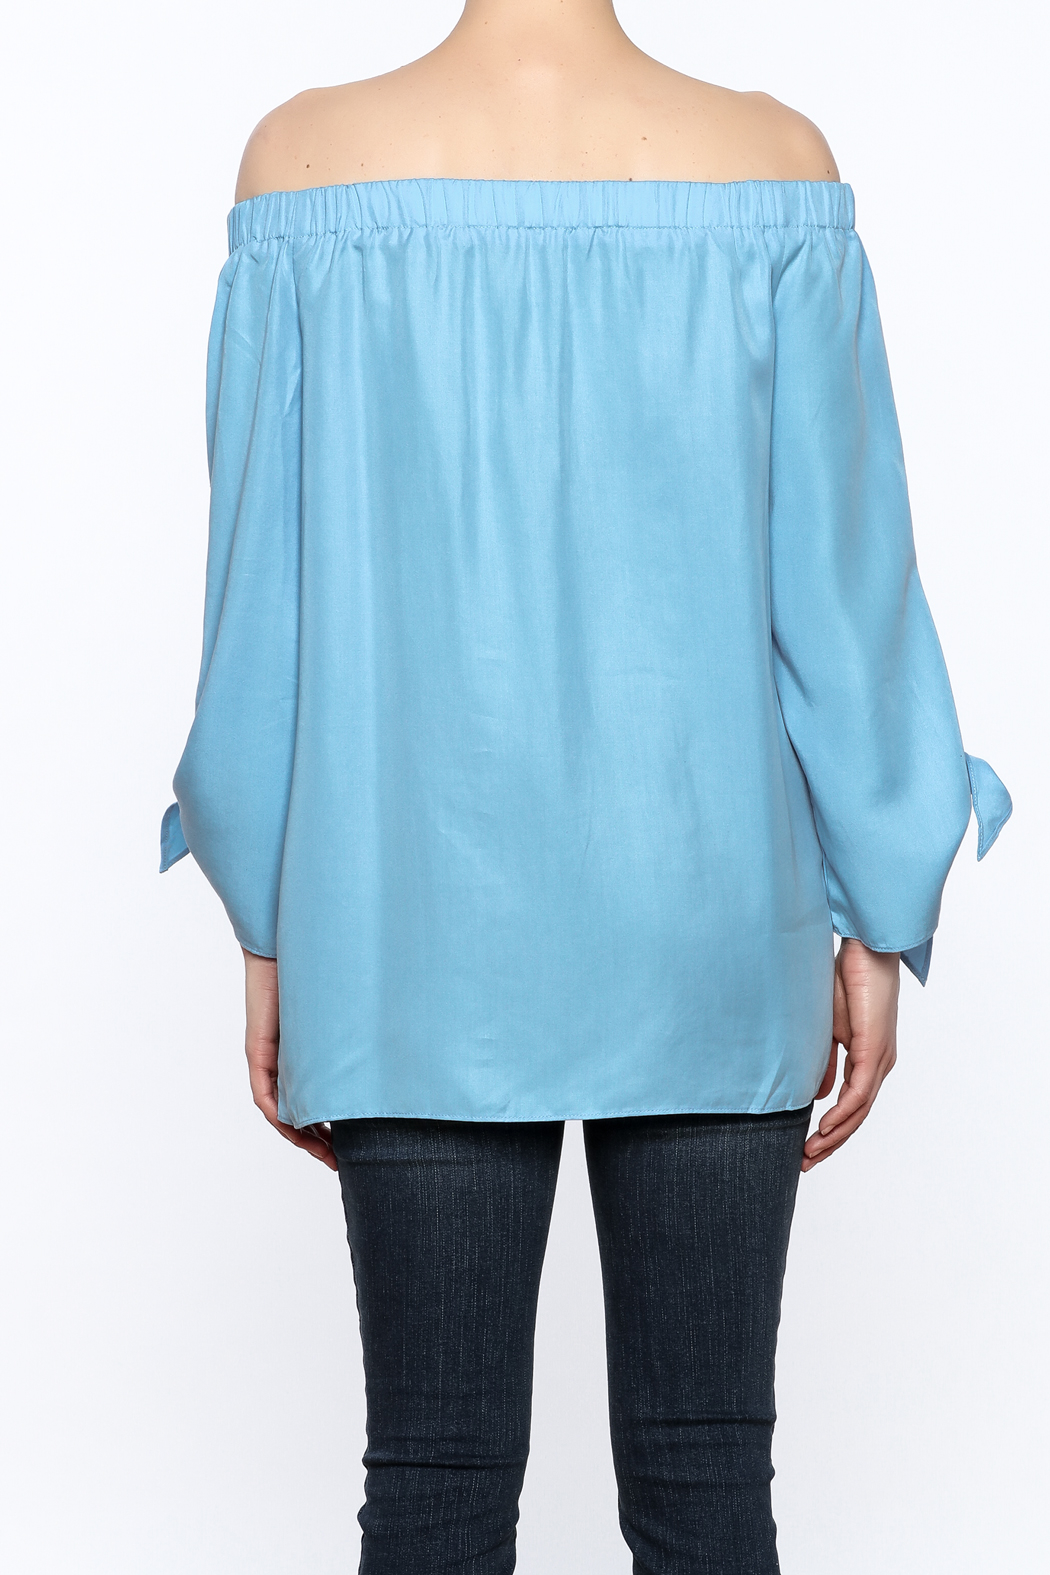 Do & Be Soft Blue Long Top - Back Cropped Image